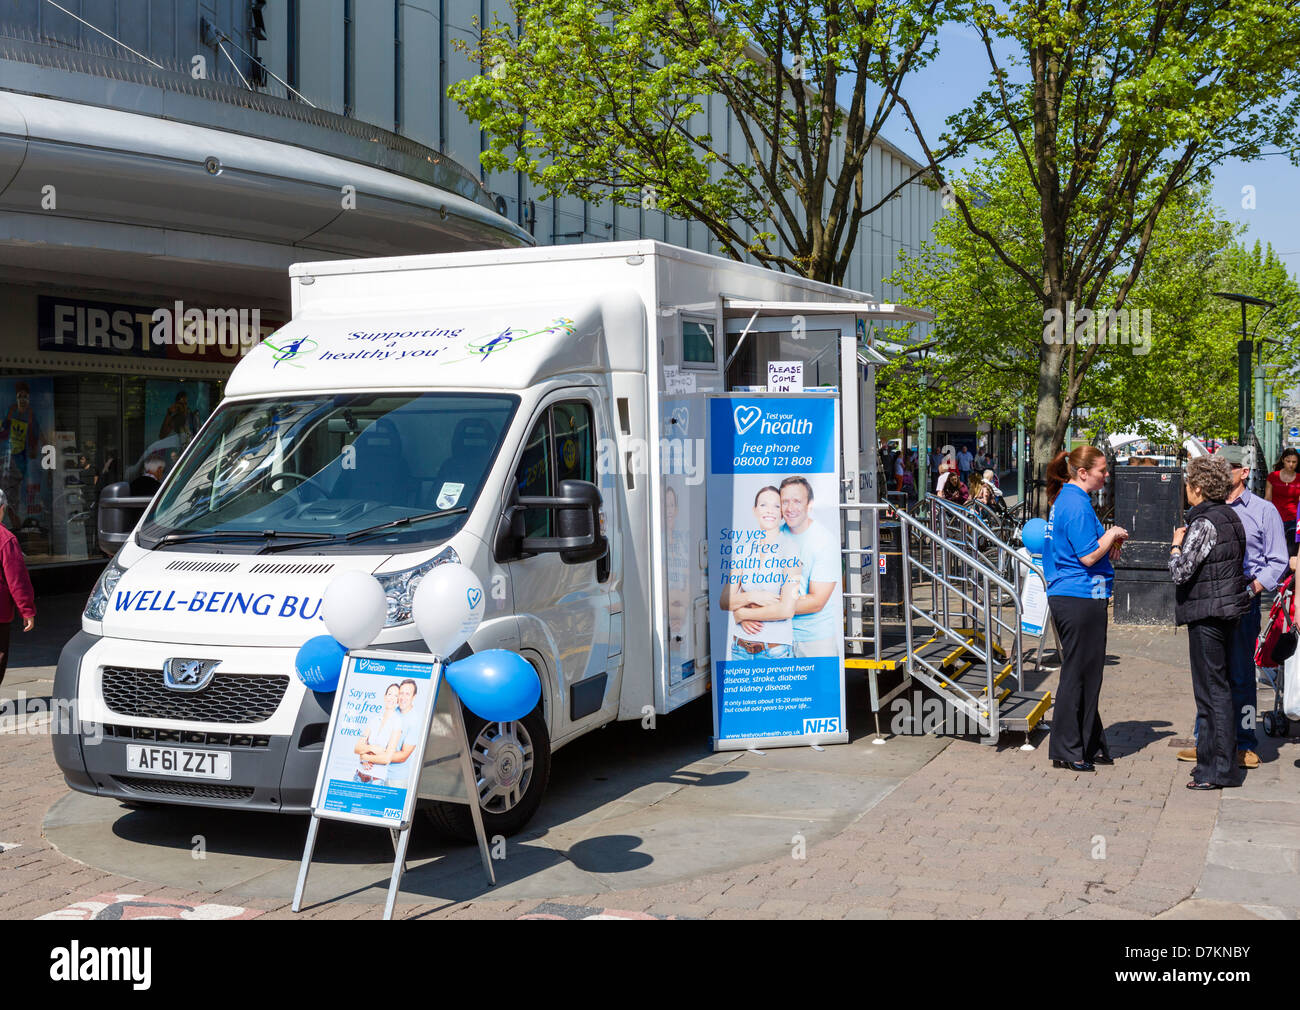 The NHS Well Being Bus giving free health checks in the town centre, Doncaster, South Yorkshire, England, UK - Stock Image